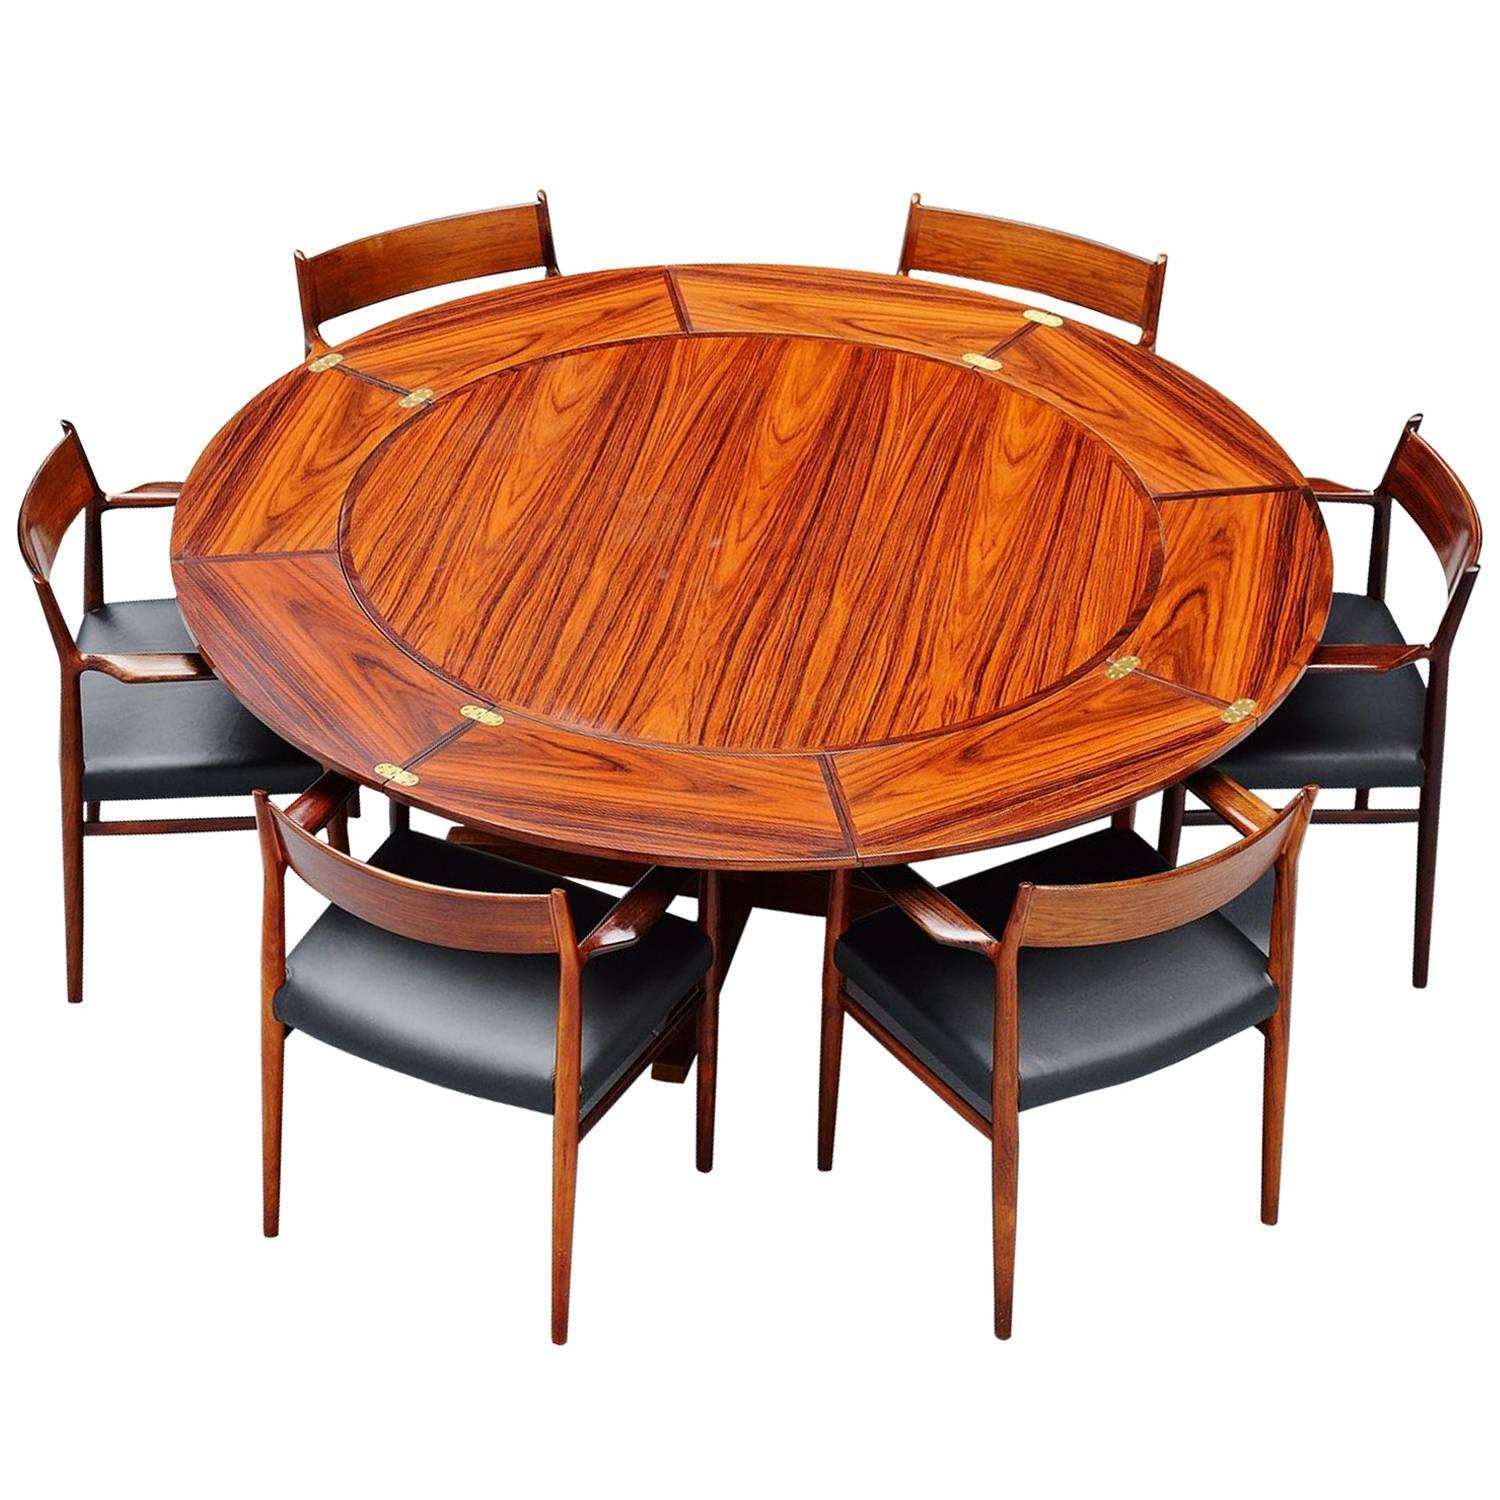 Dyrlund Extendable Rosewood Dining Table, Denmark, 1962 At